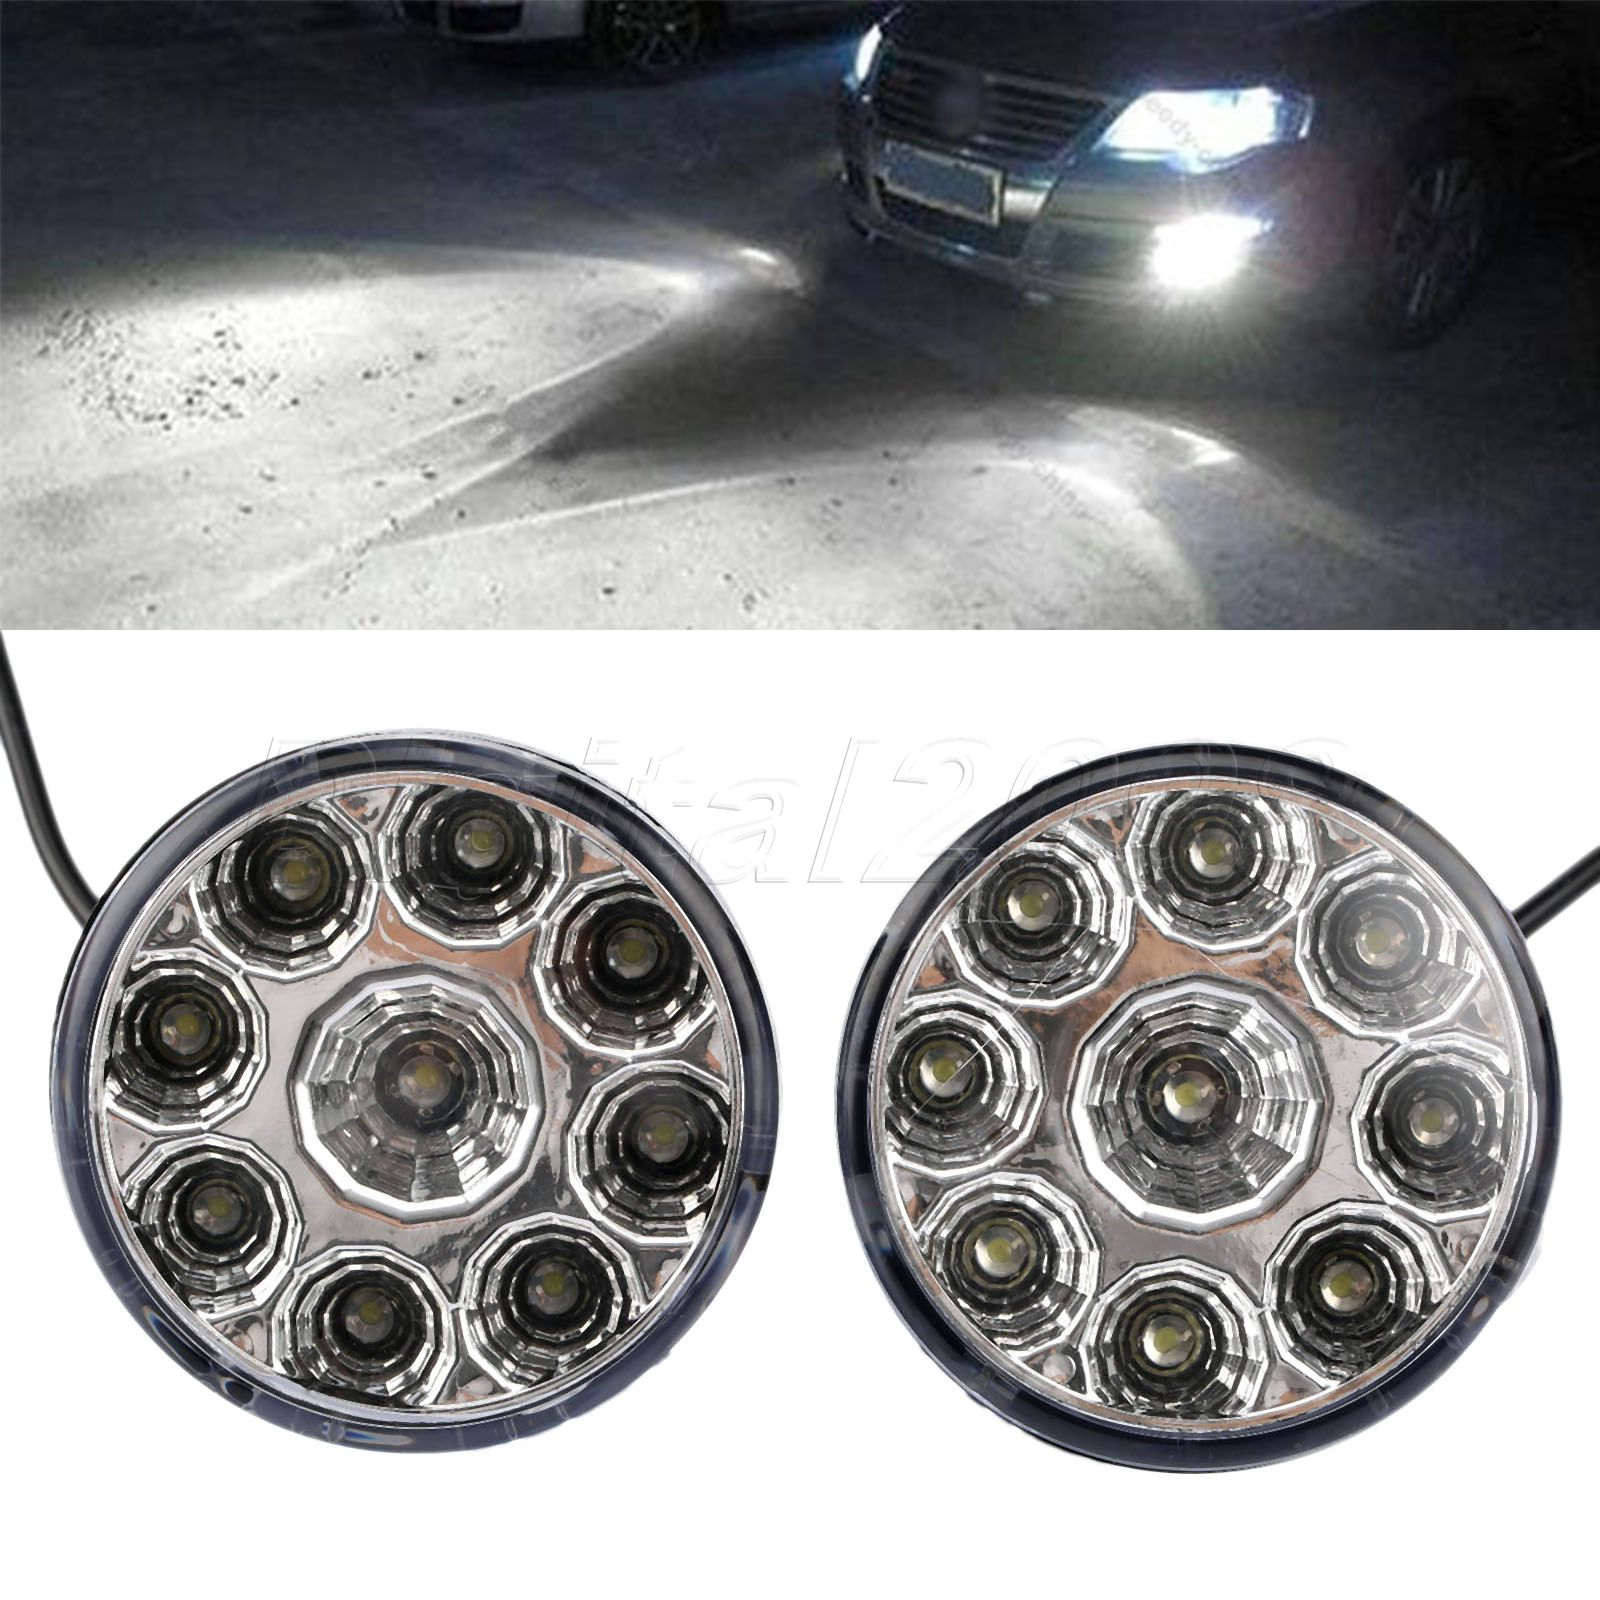 Yetaha 2pcs DRL Round Daytime Running Light Car Fog Lamp Day Driving Lamp 12v 9 LED Auto Headlight White Fog Light High Quality 1pcs high power h3 led 80w led super bright white fog tail turn drl auto car light daytime running driving lamp bulb 12v